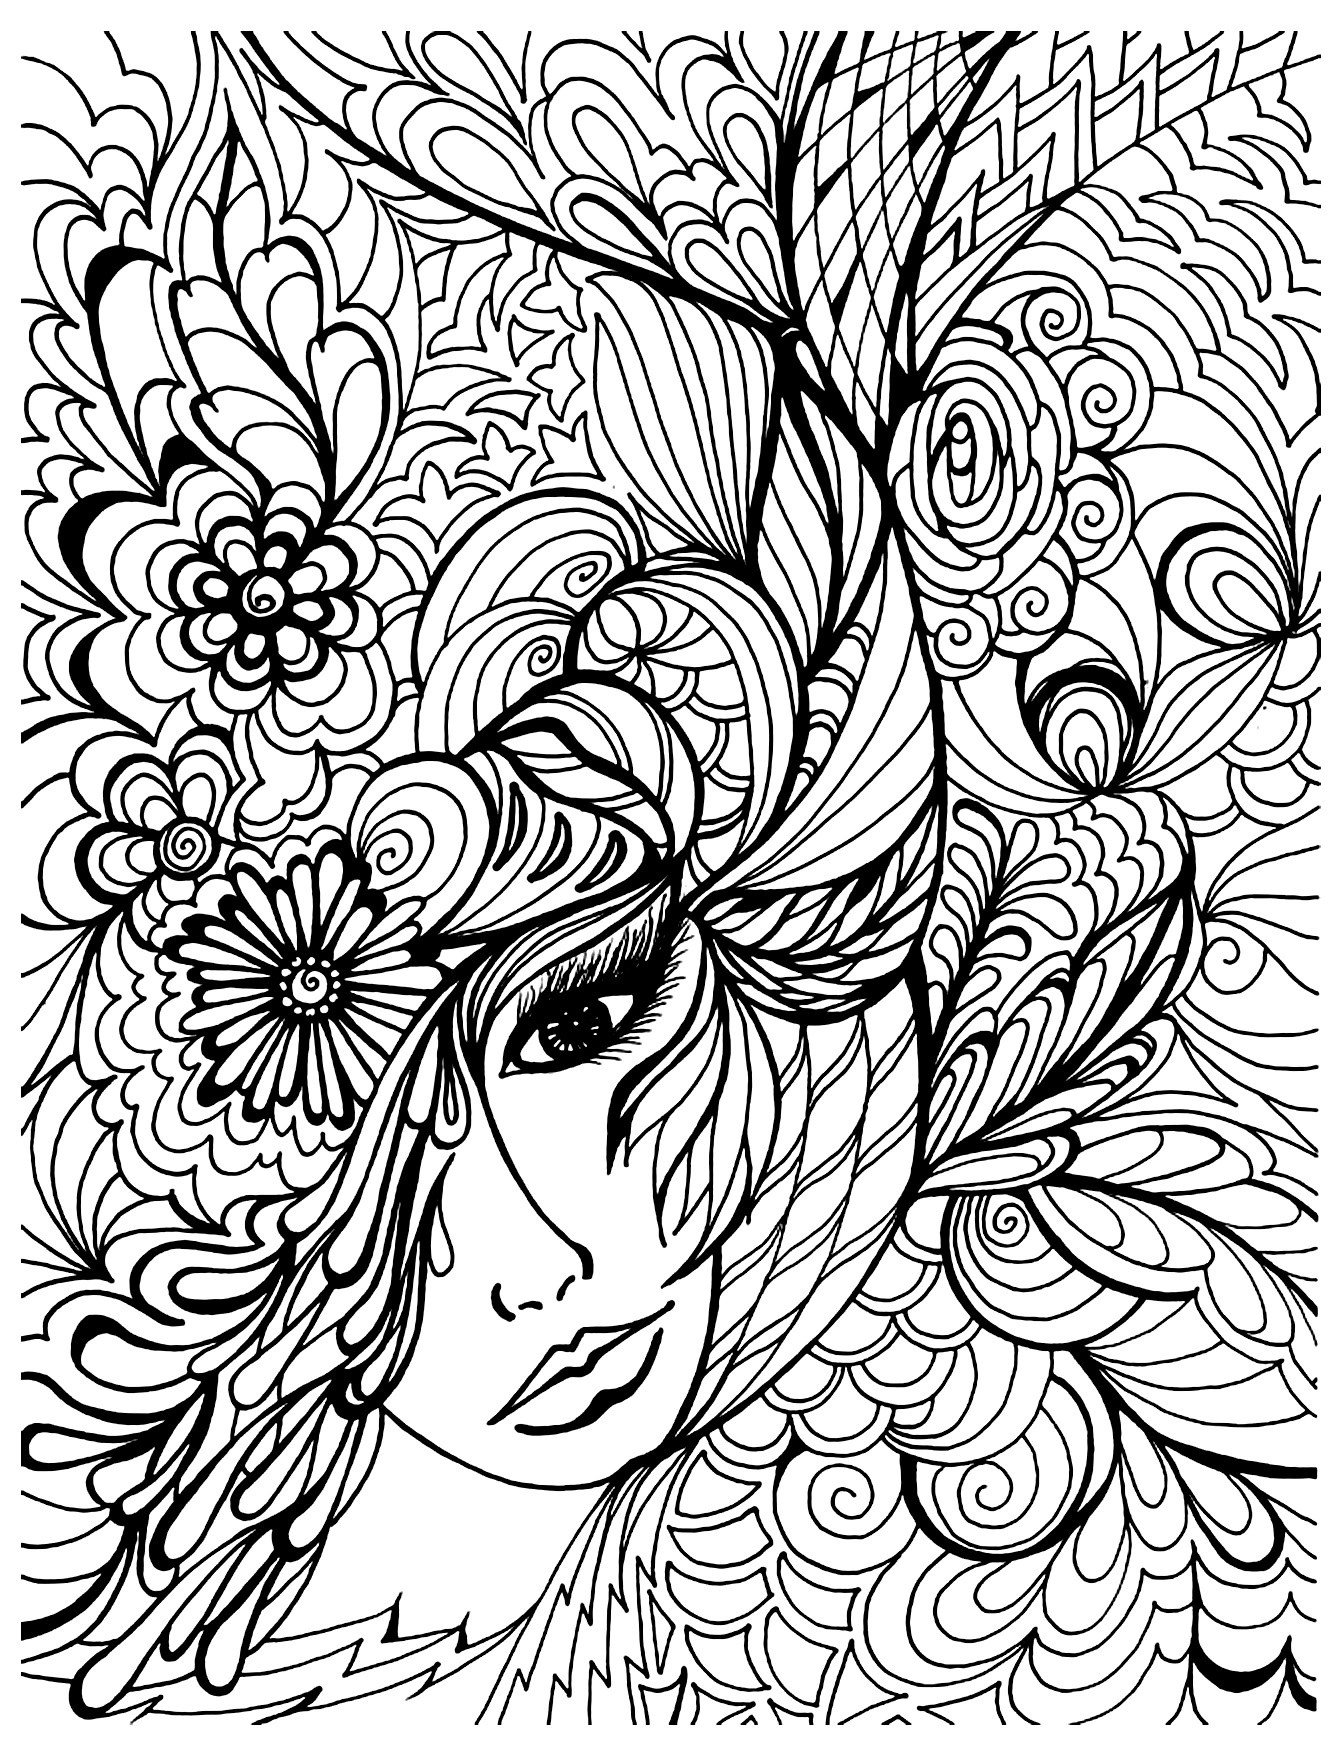 Face Vegetation Zen And Anti Stress Coloring Pages For Adults